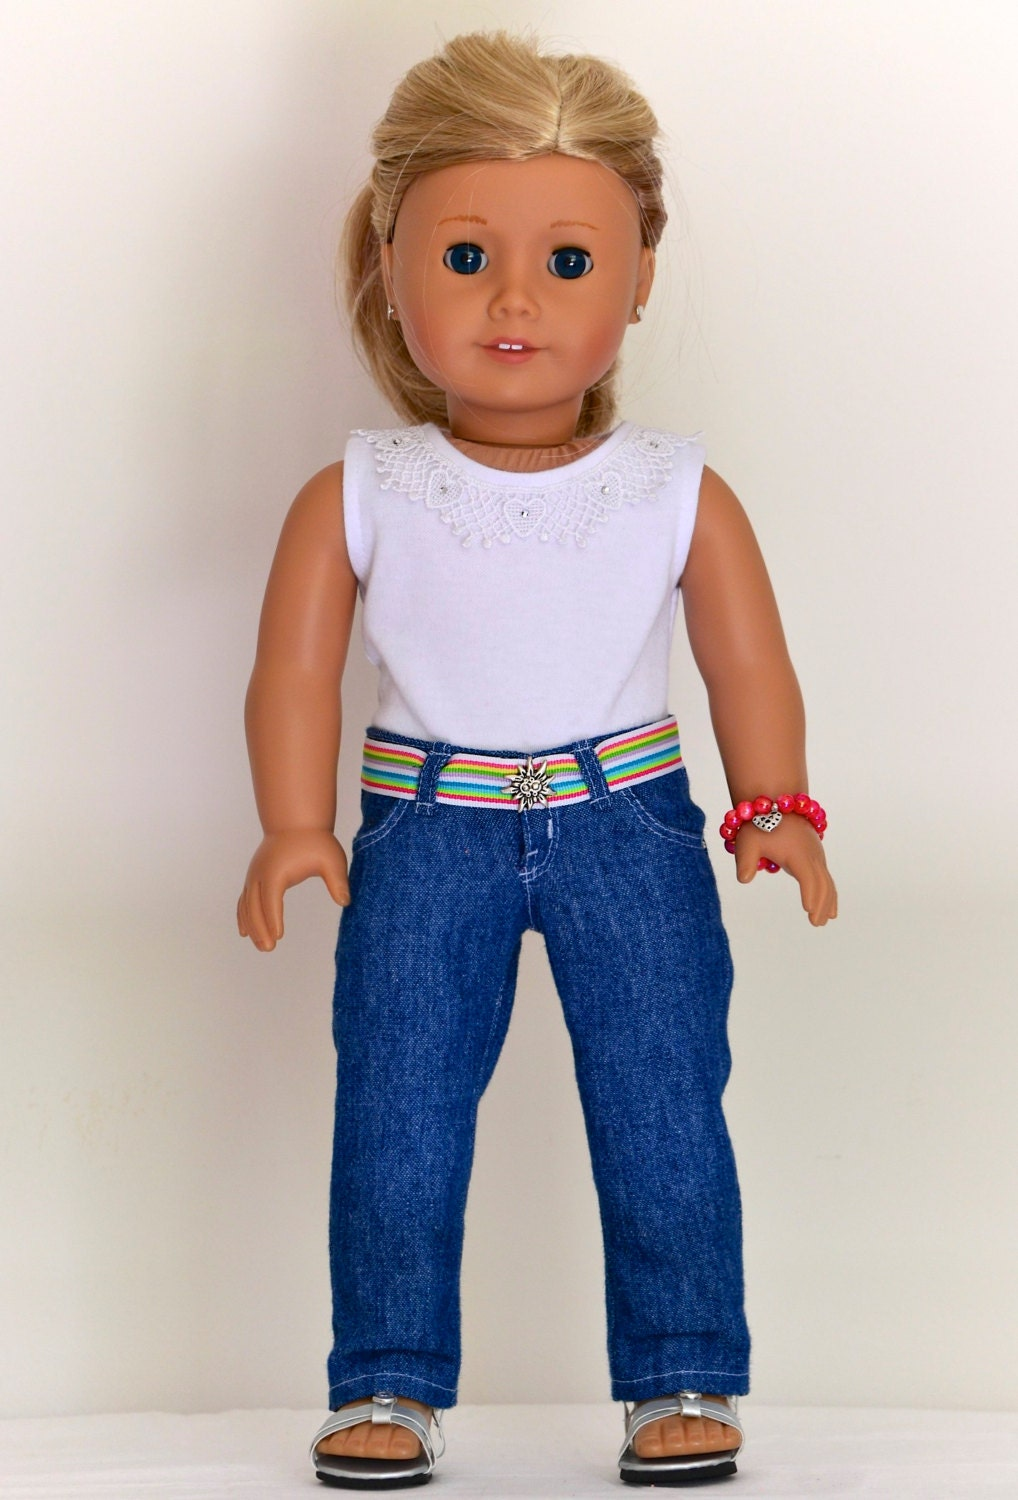 18 inch, American Girl  Doll Clothing. Low-rise Skinny Jeans with belt, Fashion Knit T-Shirt, bracelet.